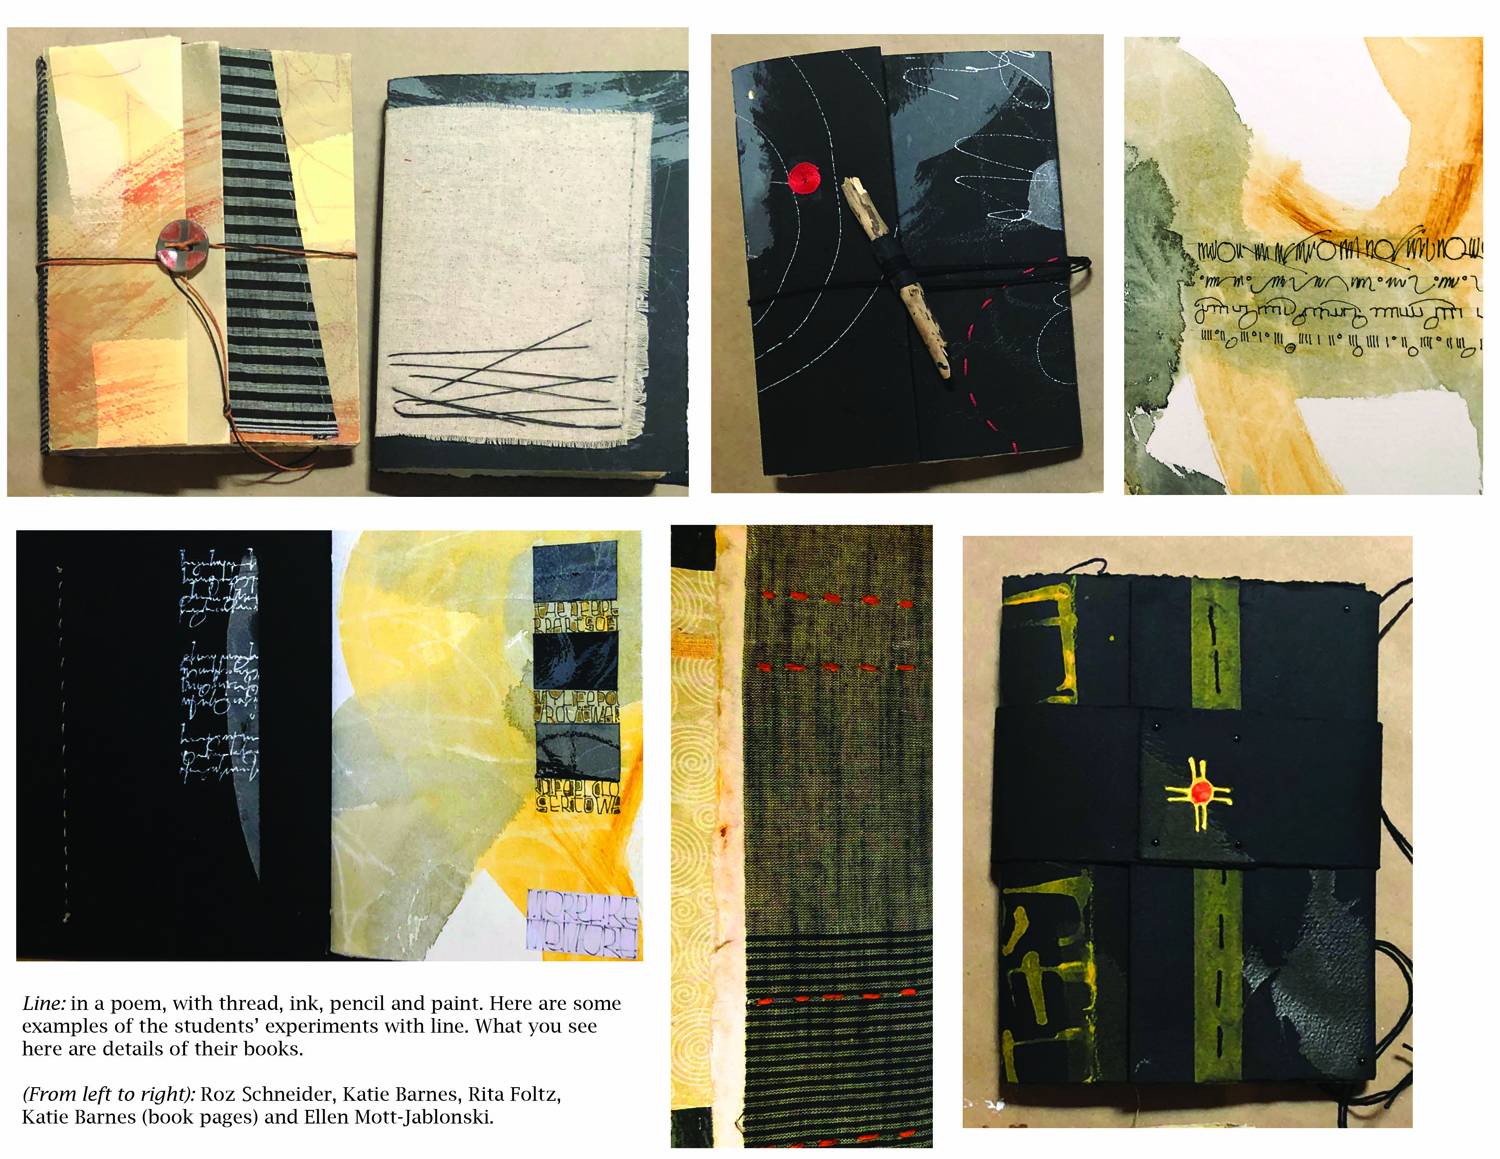 Students working with  line:  in a poem, with thread, ink, pencil and paint.  I don't have many pictures of the interior of the books, but Suzy Farren just sent me the ones below: